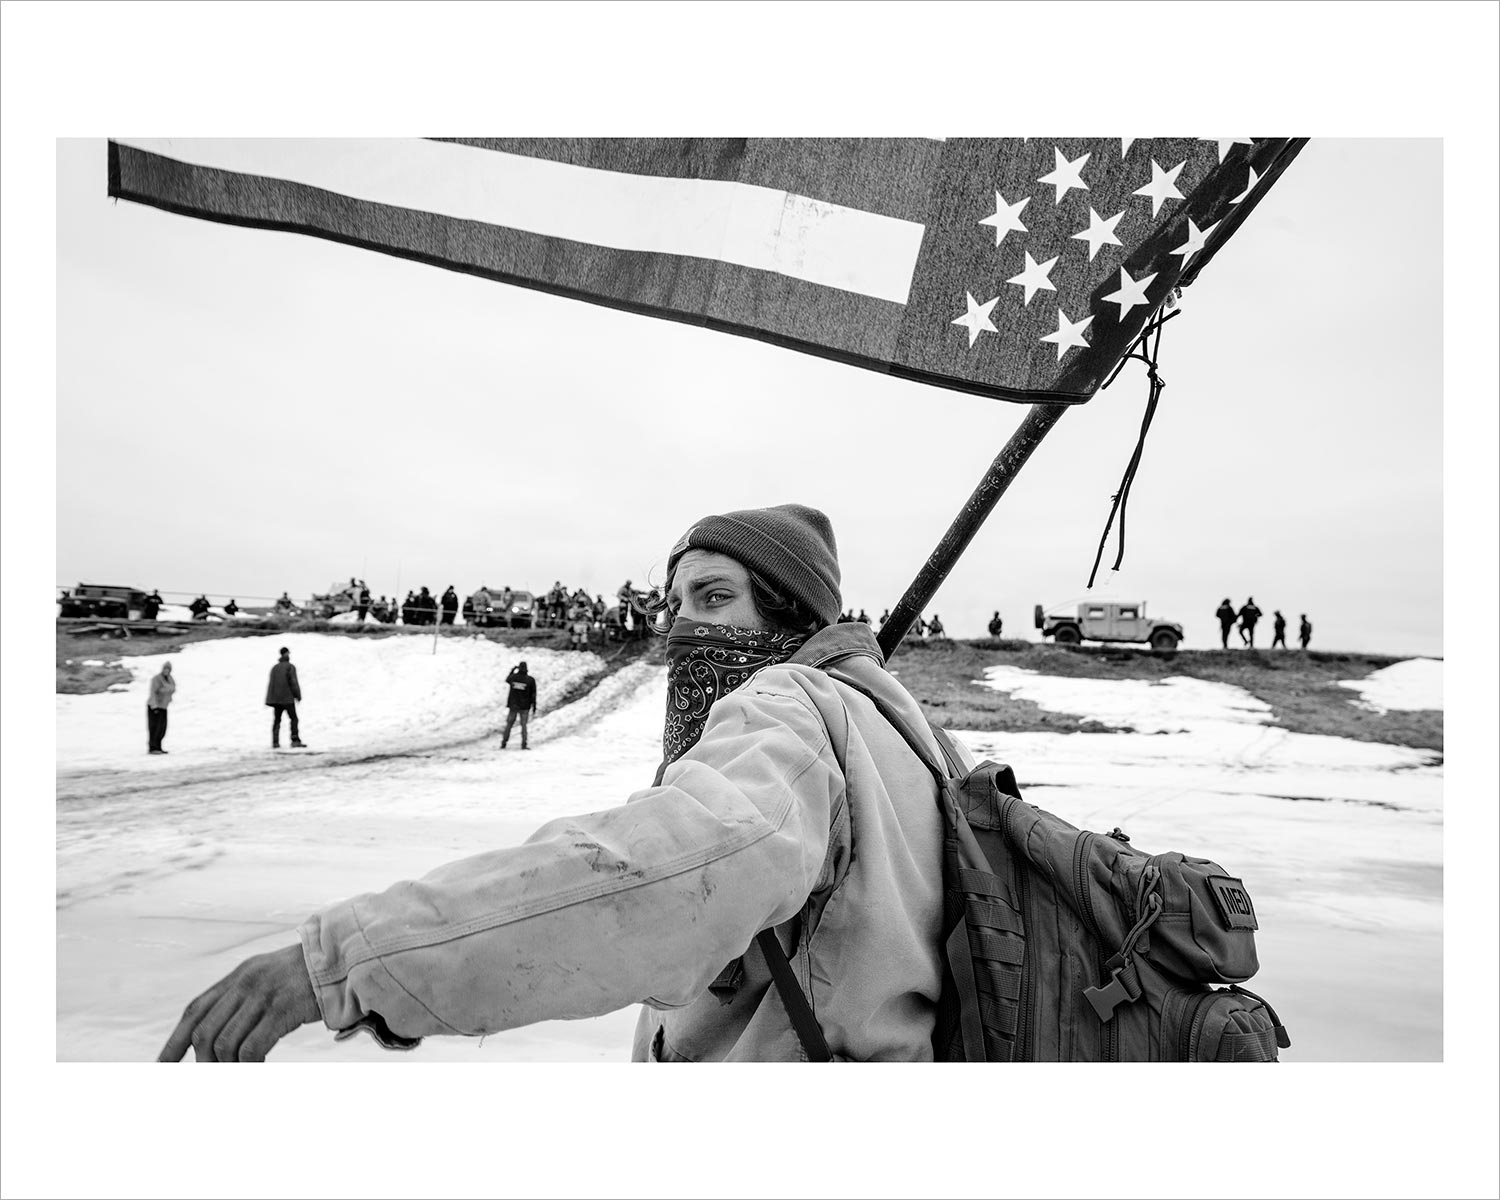 Magnum Distribution: Standing Rock